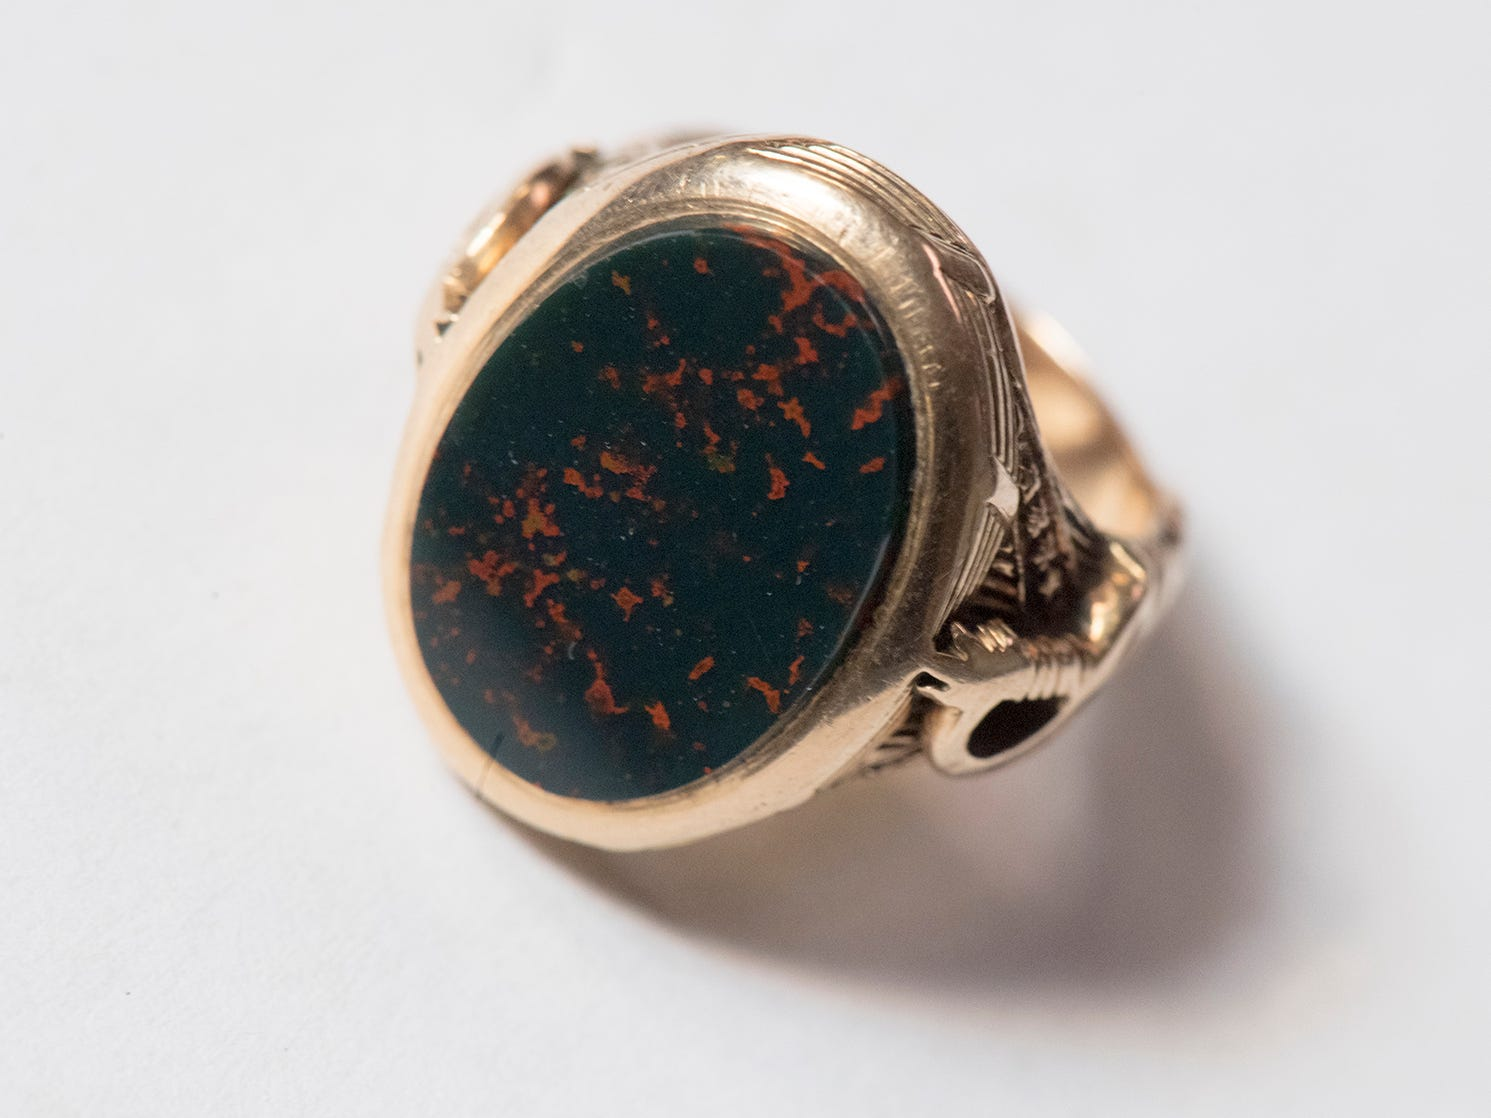 "This is a U.S. Military Academy gold ring featuring a flat green polished stone with red inclusions. The ring has an inscription of the ""Frank P Blair, Class of 77, USMA"""